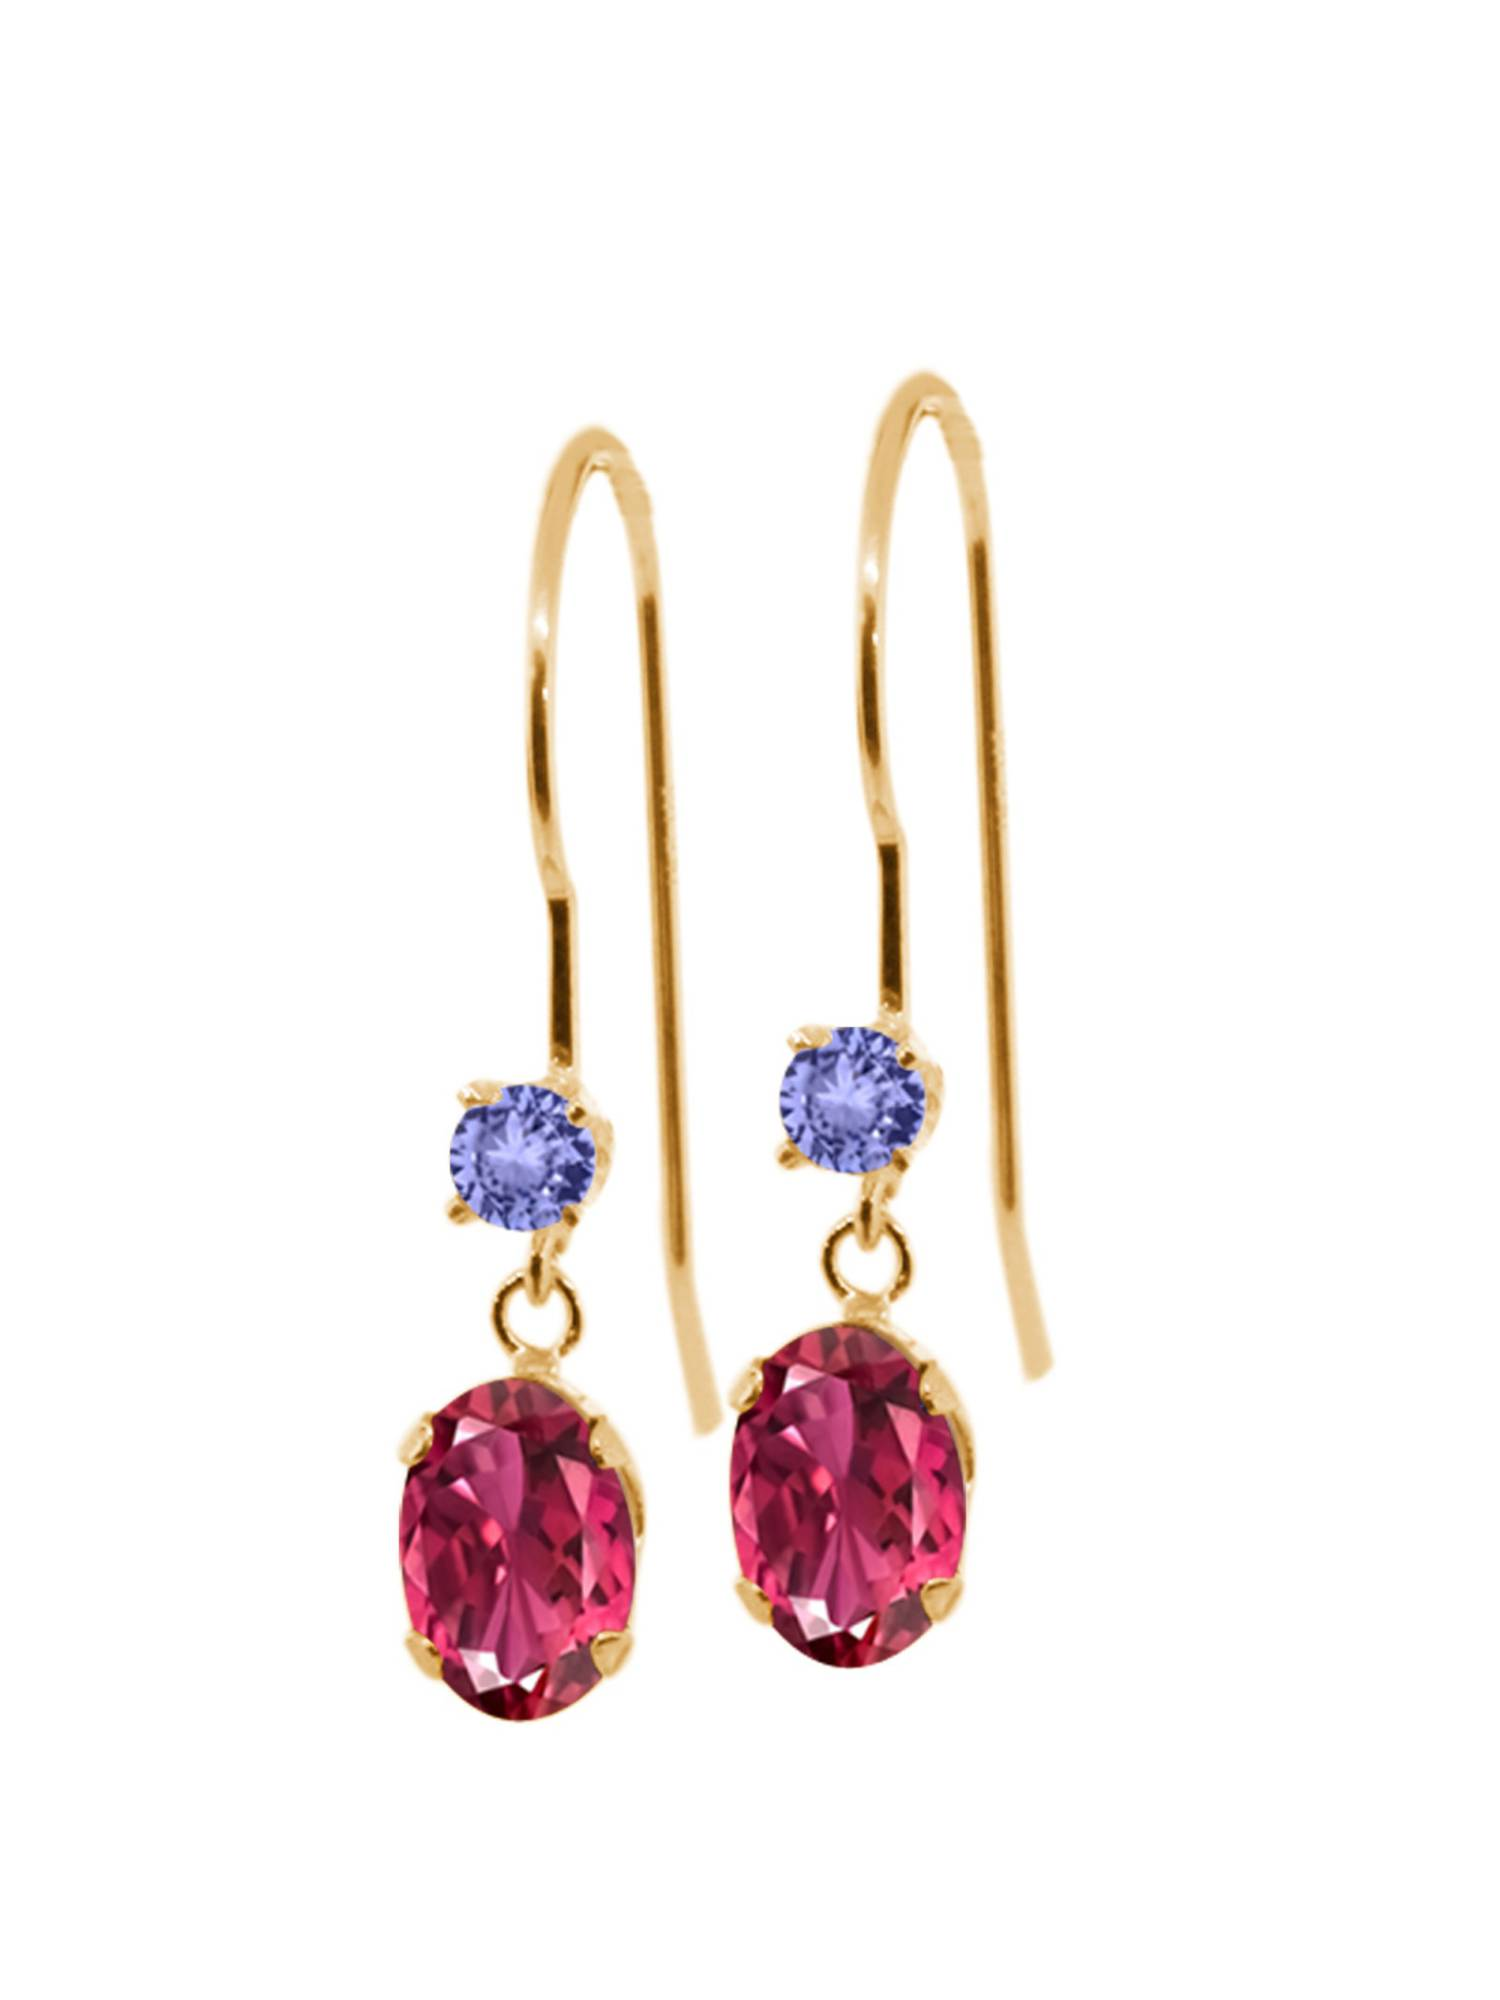 1.16 Ct Oval Pink Tourmaline Blue Tanzanite 14K Yellow Gold Earrings by